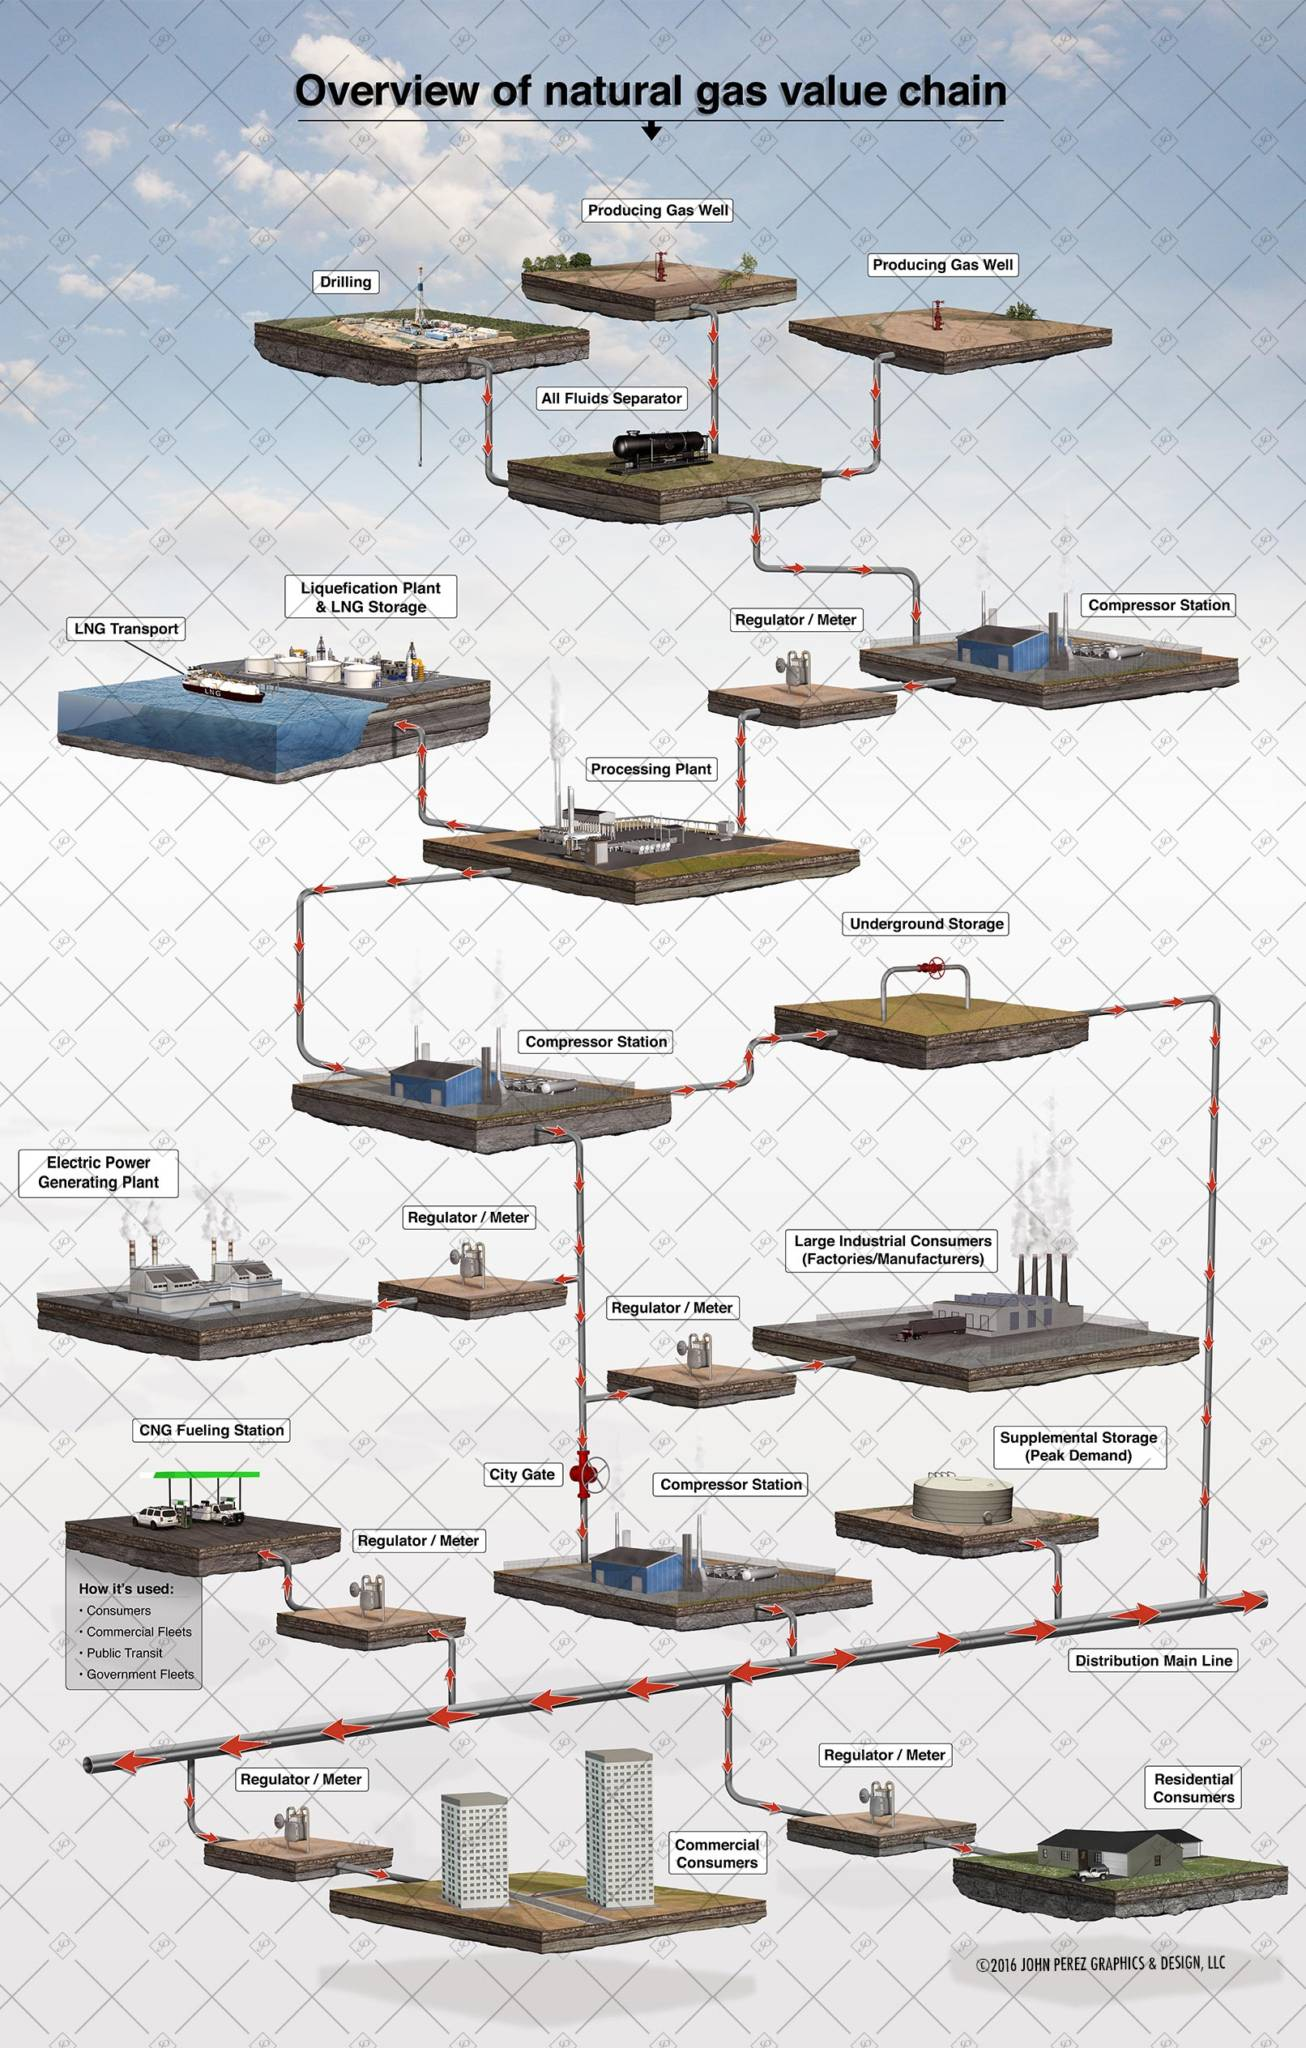 Natural Gas Value Chain Schematic, oil and gas graphics, oil and gas schematics, drilling geology, john perez graphics